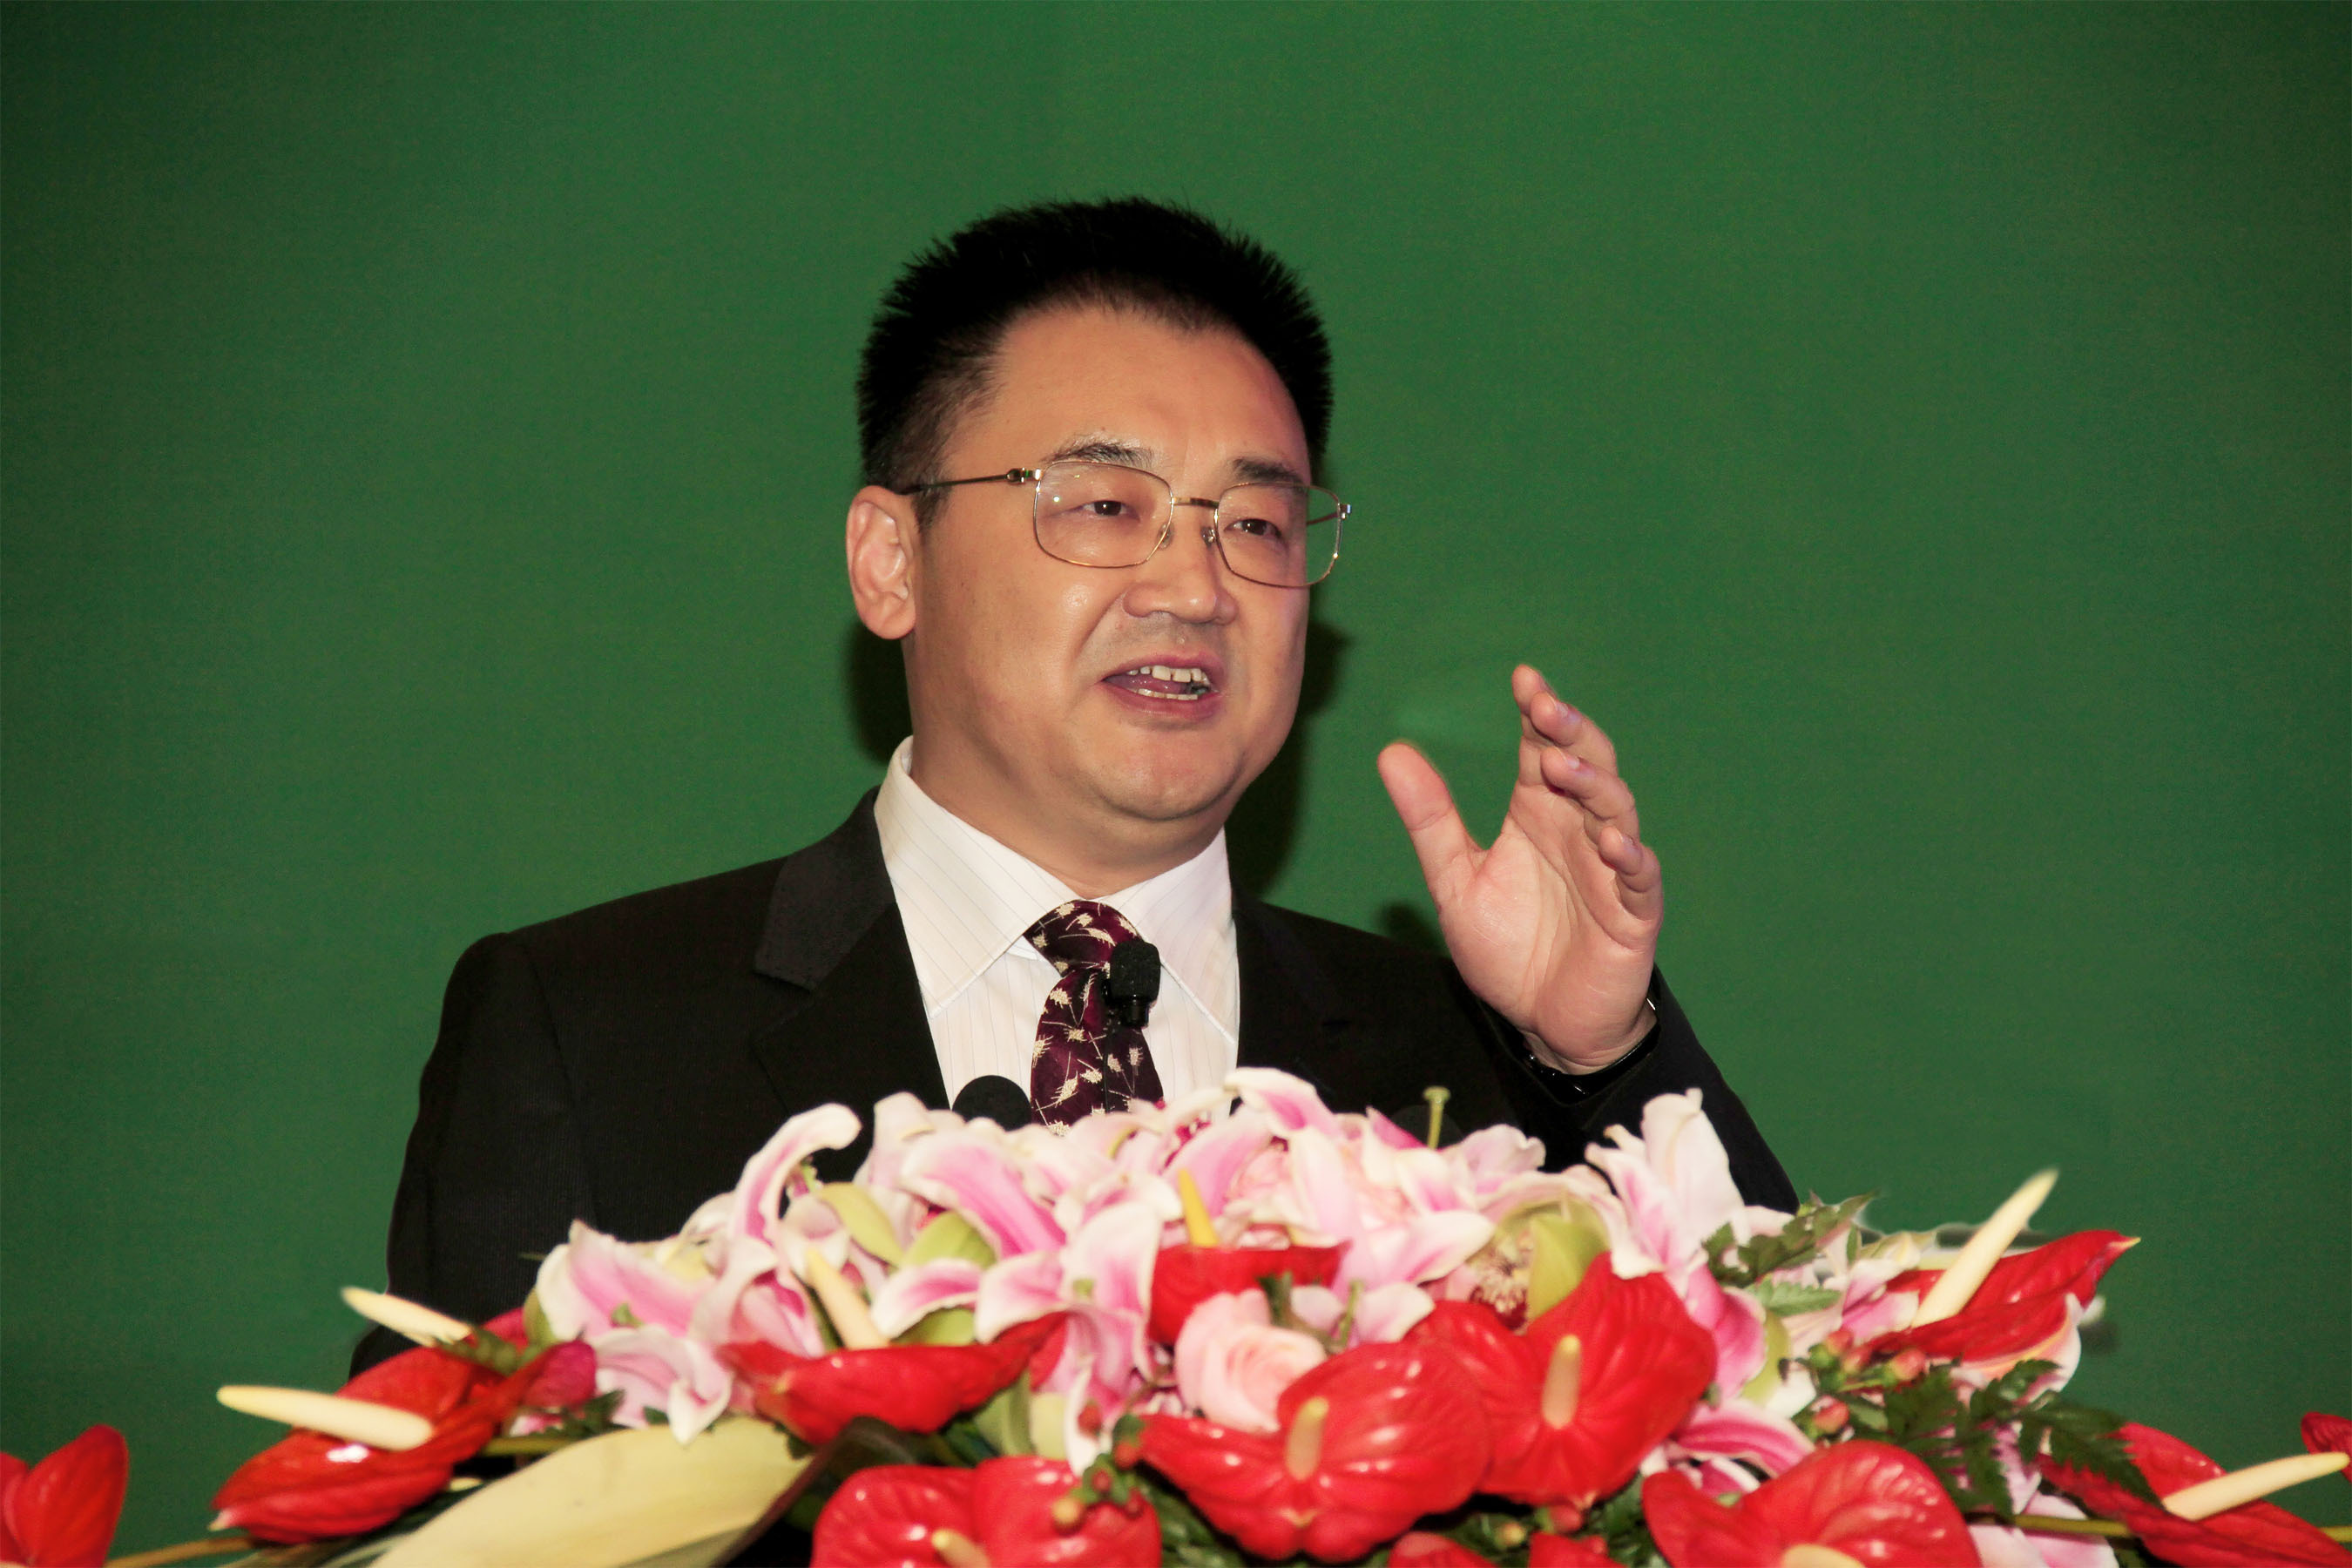 """Dr. Rongxiang Xu, the founder of """"Human Body Regenerative Restoration Science,"""" a renowned life and medical scientist and the inventor and U.S. patentee of """"A Somatic Cell Regenerating an Organ."""" (PRNewsFoto/Dr. Rongxiang Xu) (PRNewsFoto/DR. RONGXIANG XU)"""